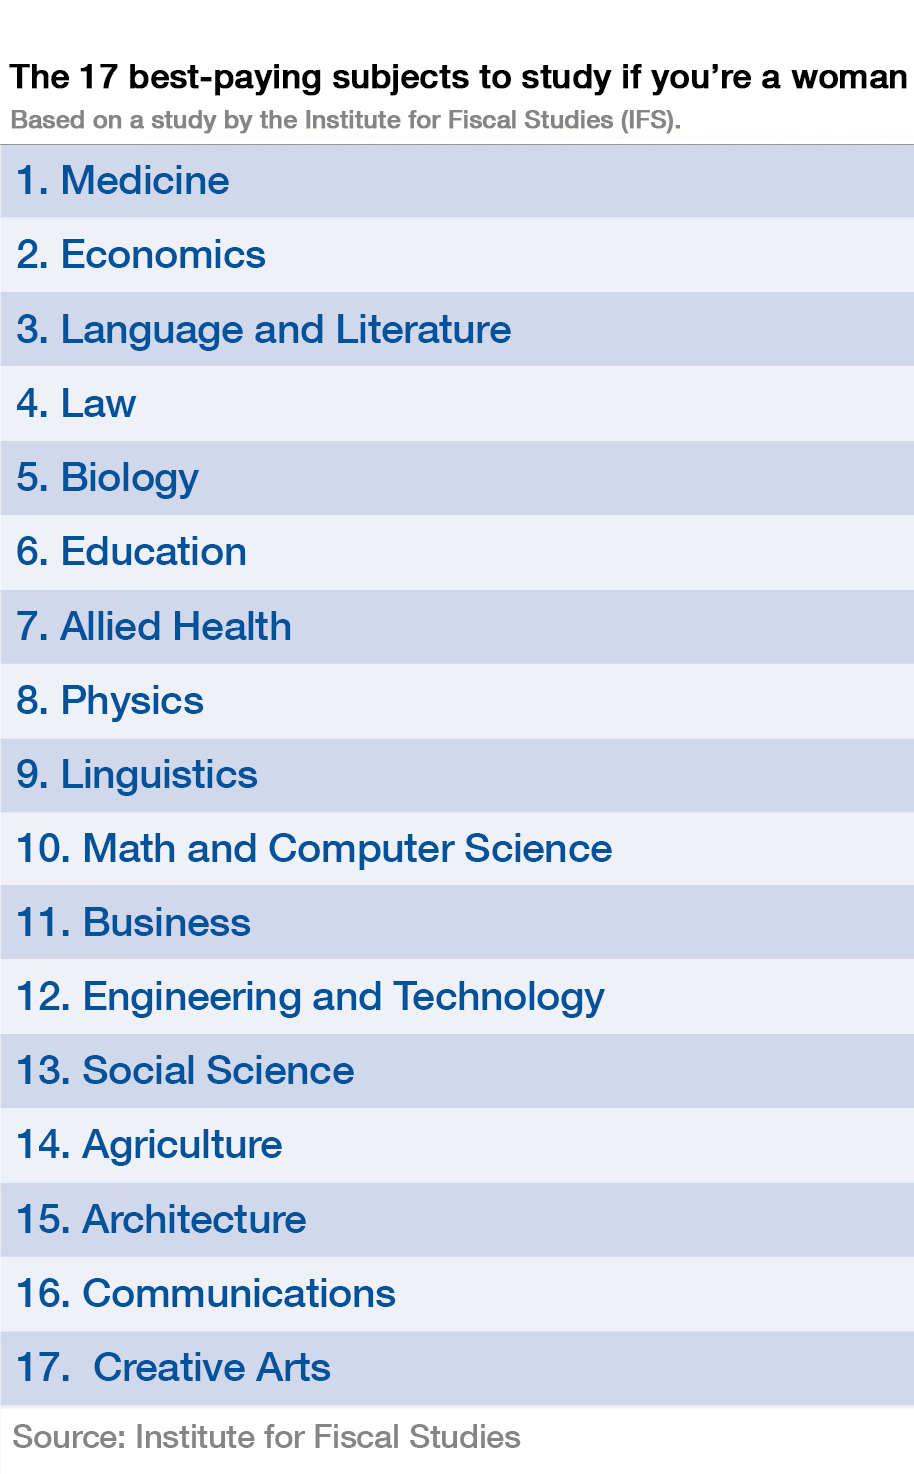 The 17 Best-paying University Subjects To Study If You're